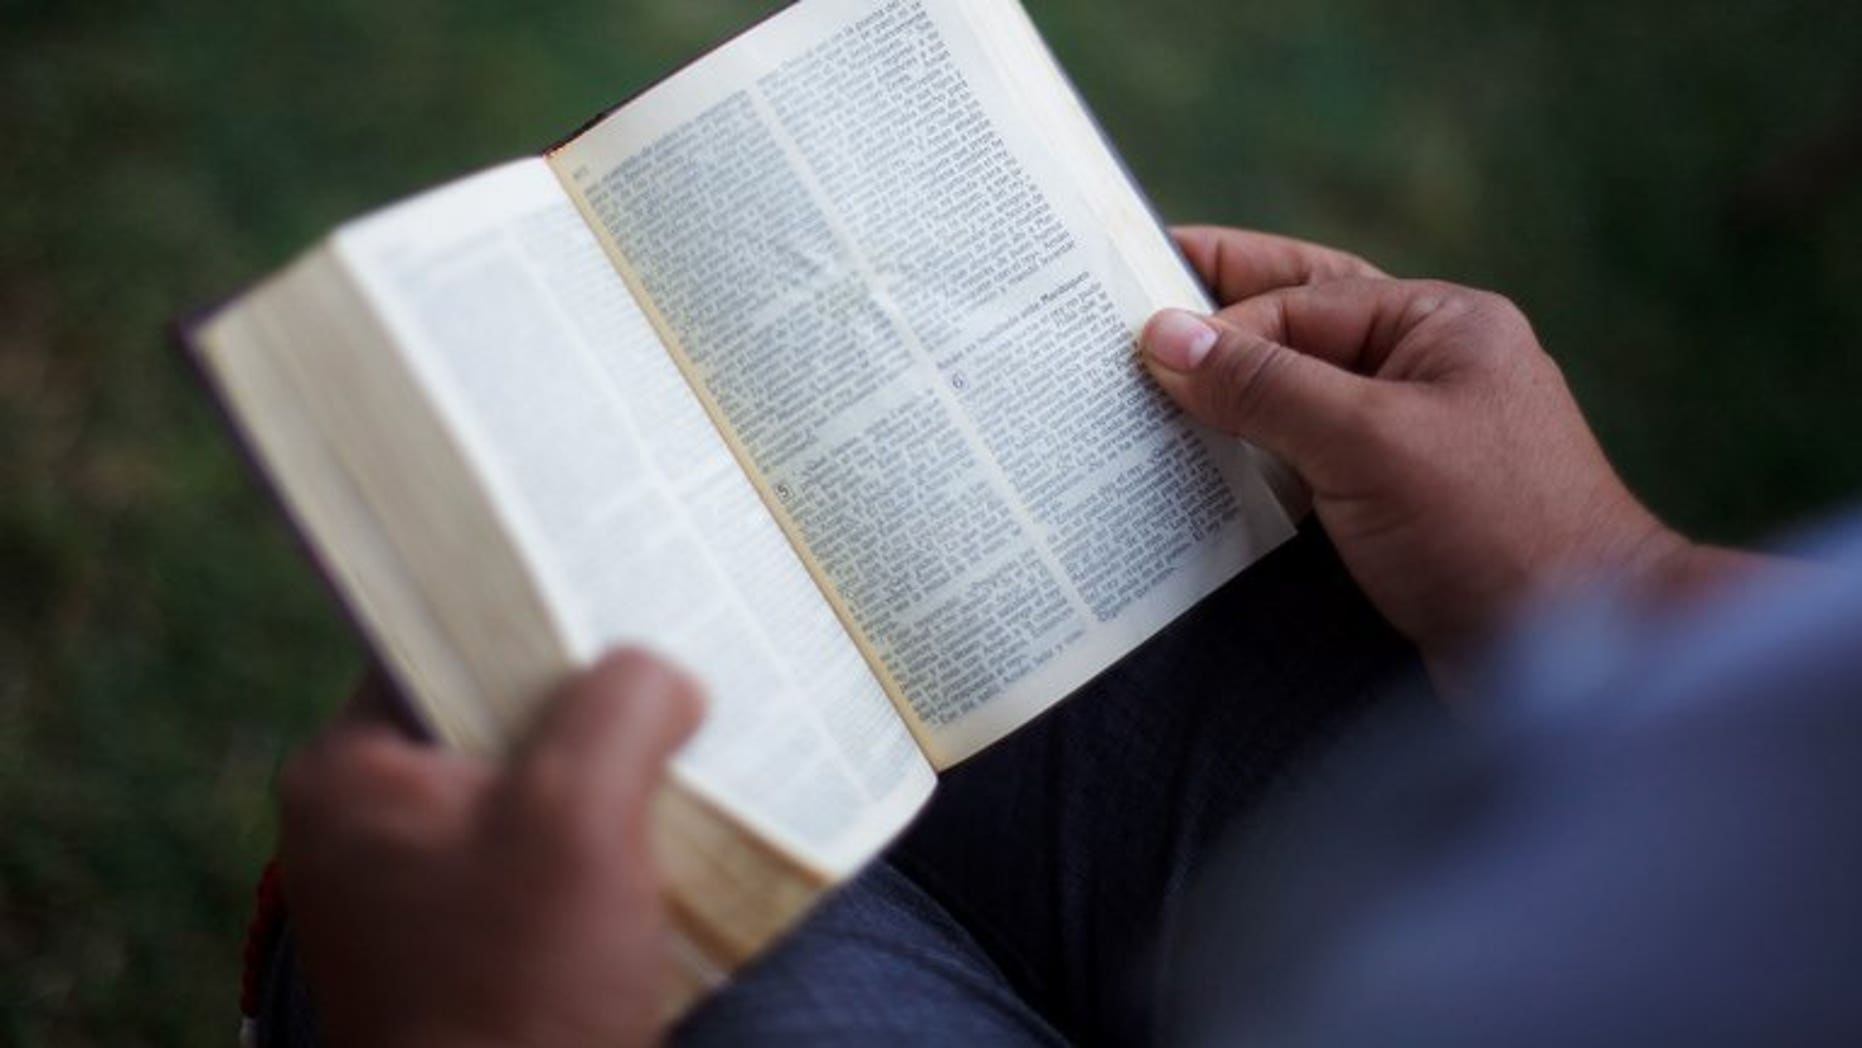 A person reads the Bible on April 25, 2012 in Phoenix, Arizona. An Iranian Christian convert has been sentenced to 10 years in prison for distributing Bibles in his home country, the Vatican missionary news agency Fides reported on Wednesday.